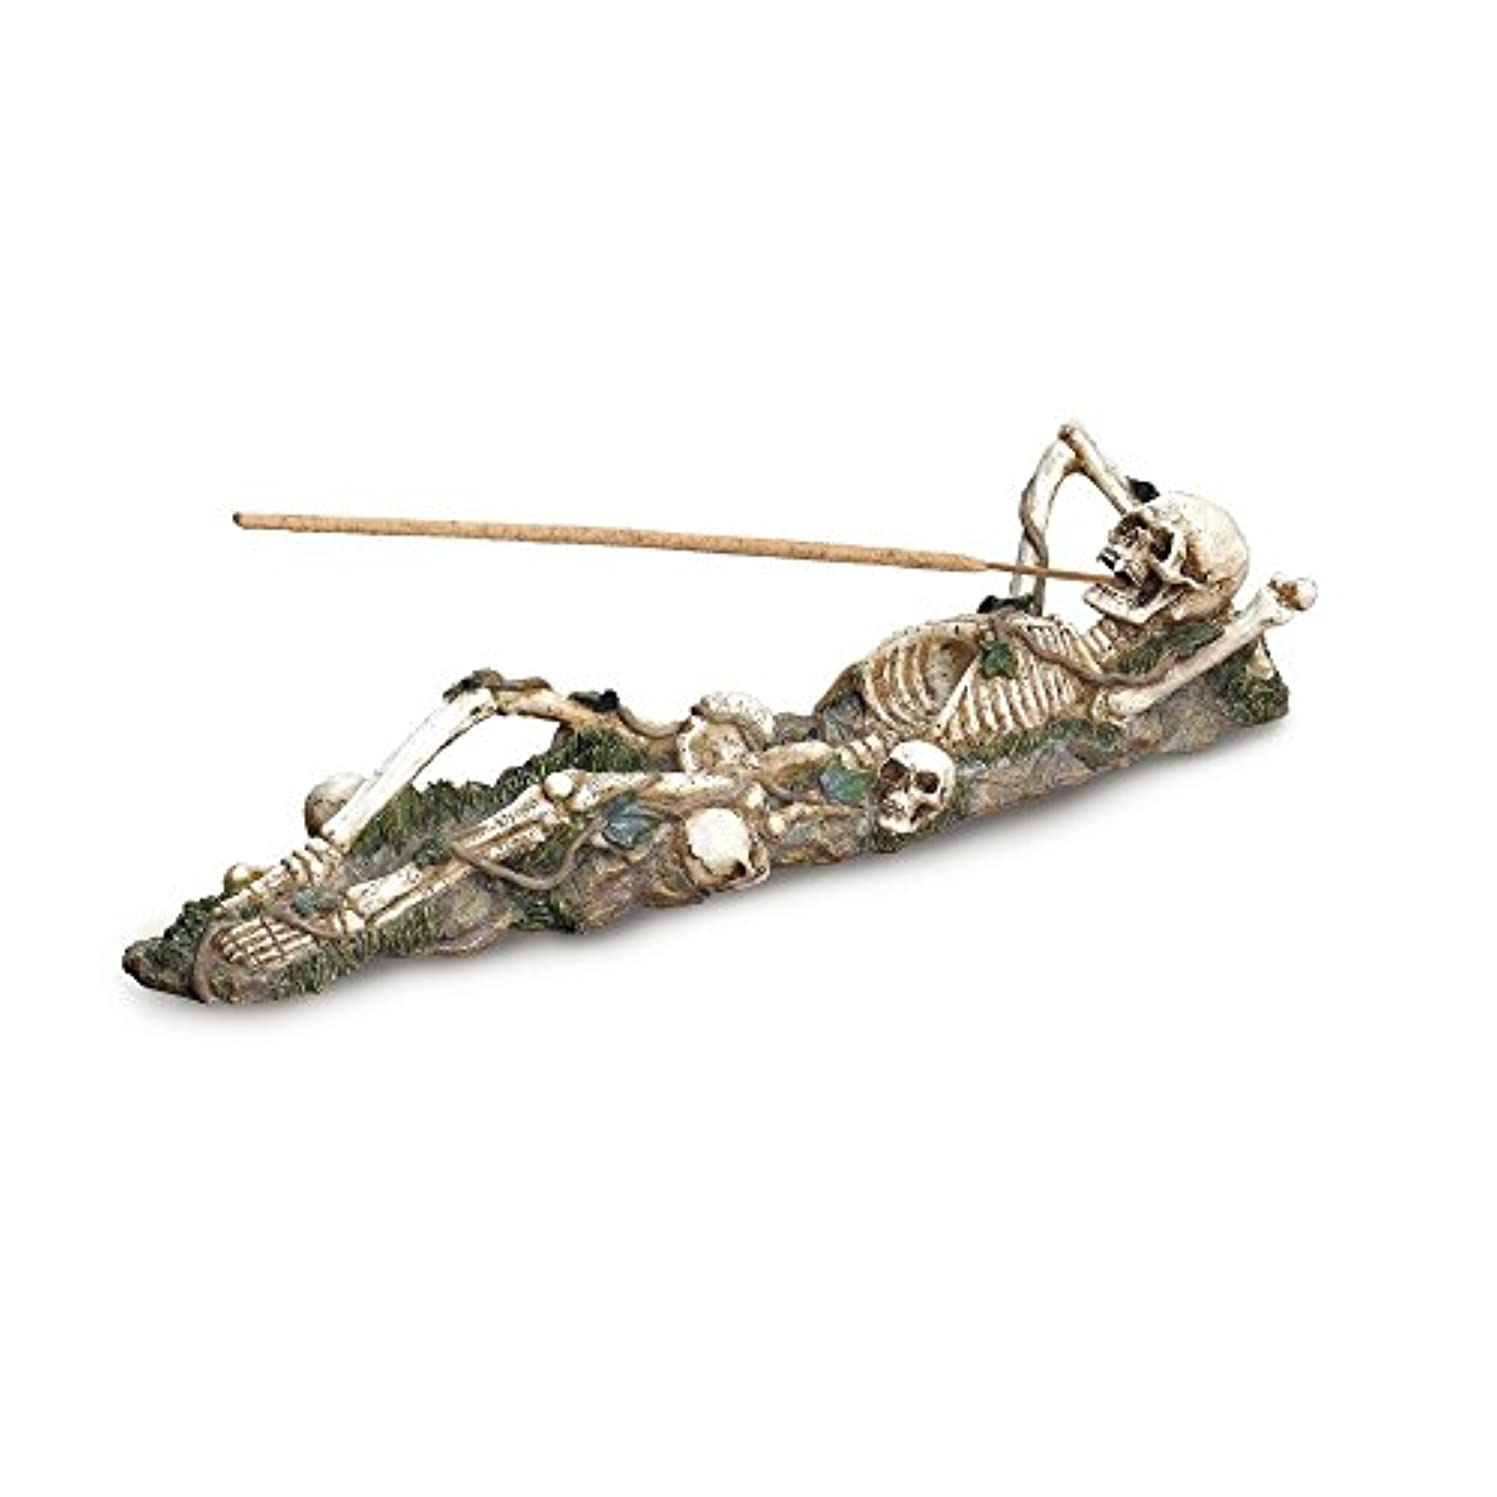 反発する意外夫婦Gifts & Decor Skeleton Incense Burner Holder Collector Halloween Gift by Gifts & Decor